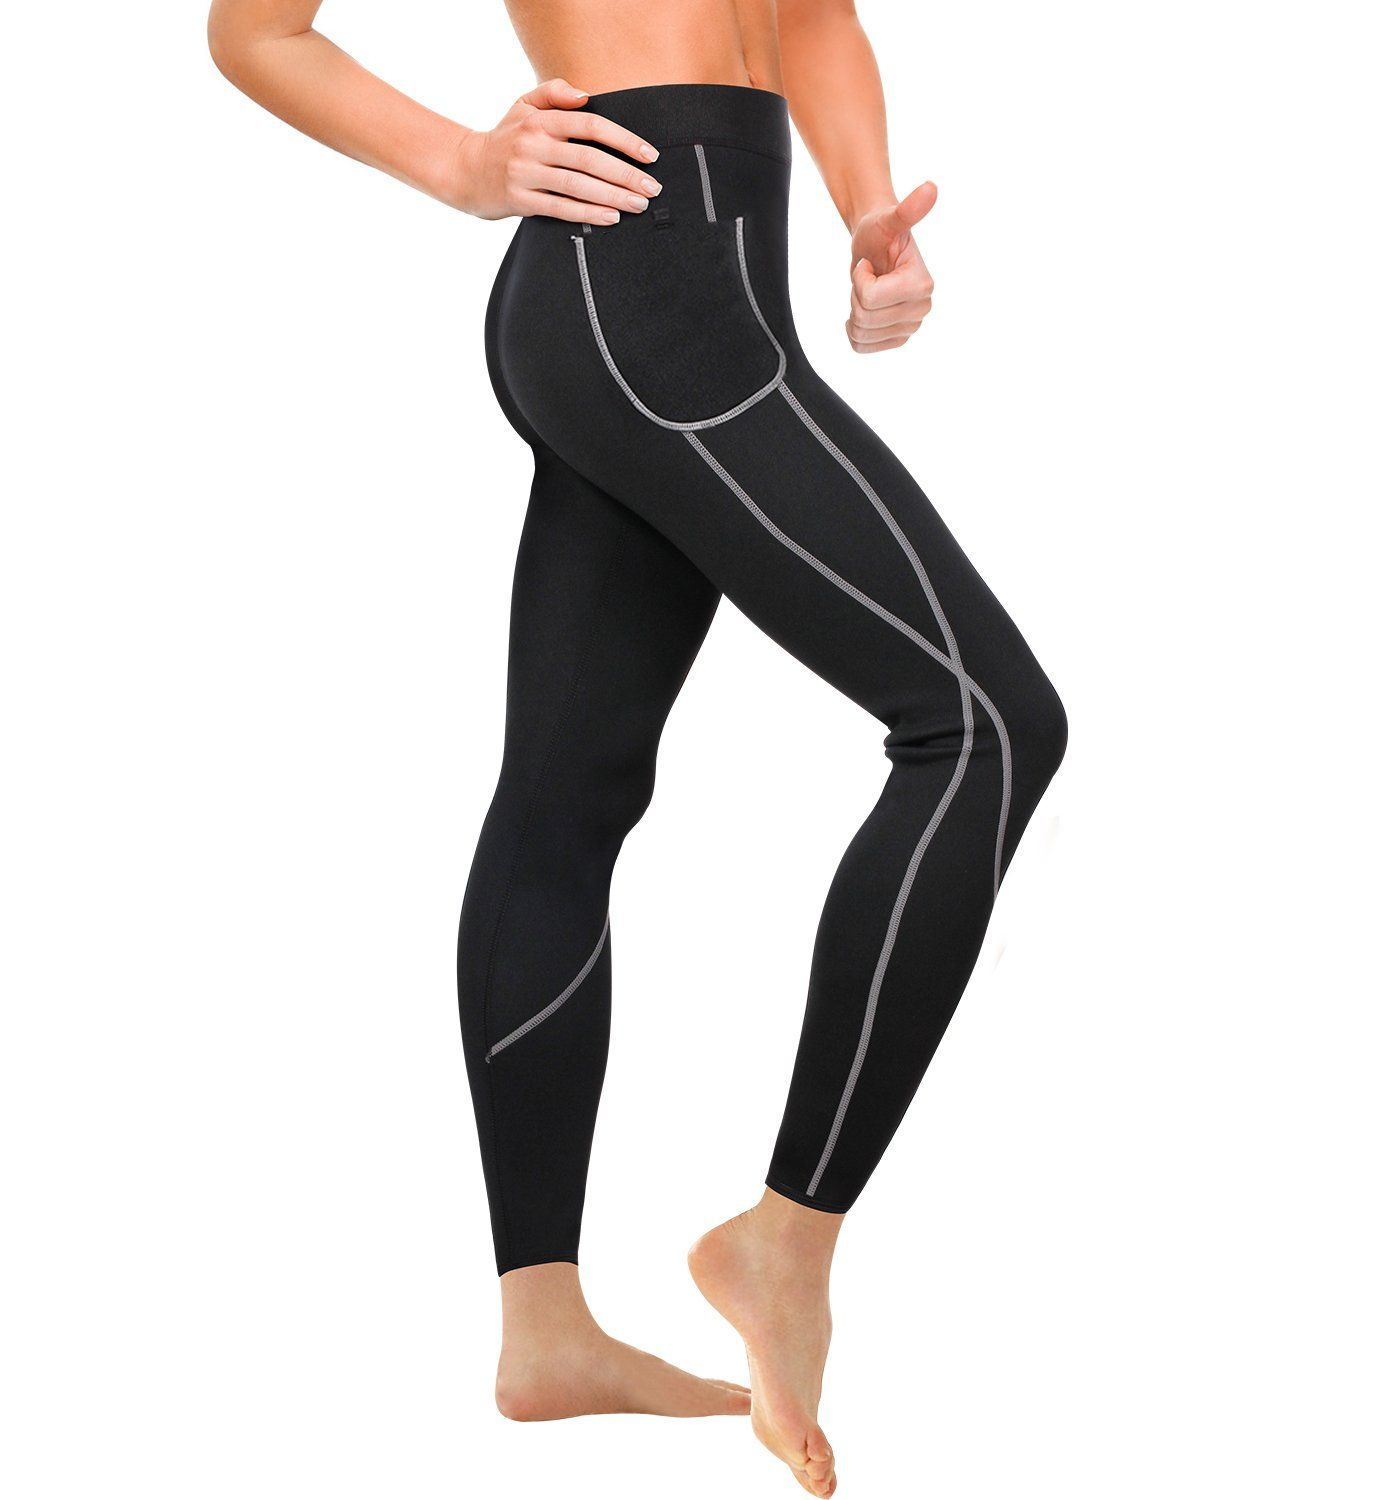 NEW Hot Slimming Shapers Pants Belt Thermo Wear Capri Anti Cellulite Weight Loss